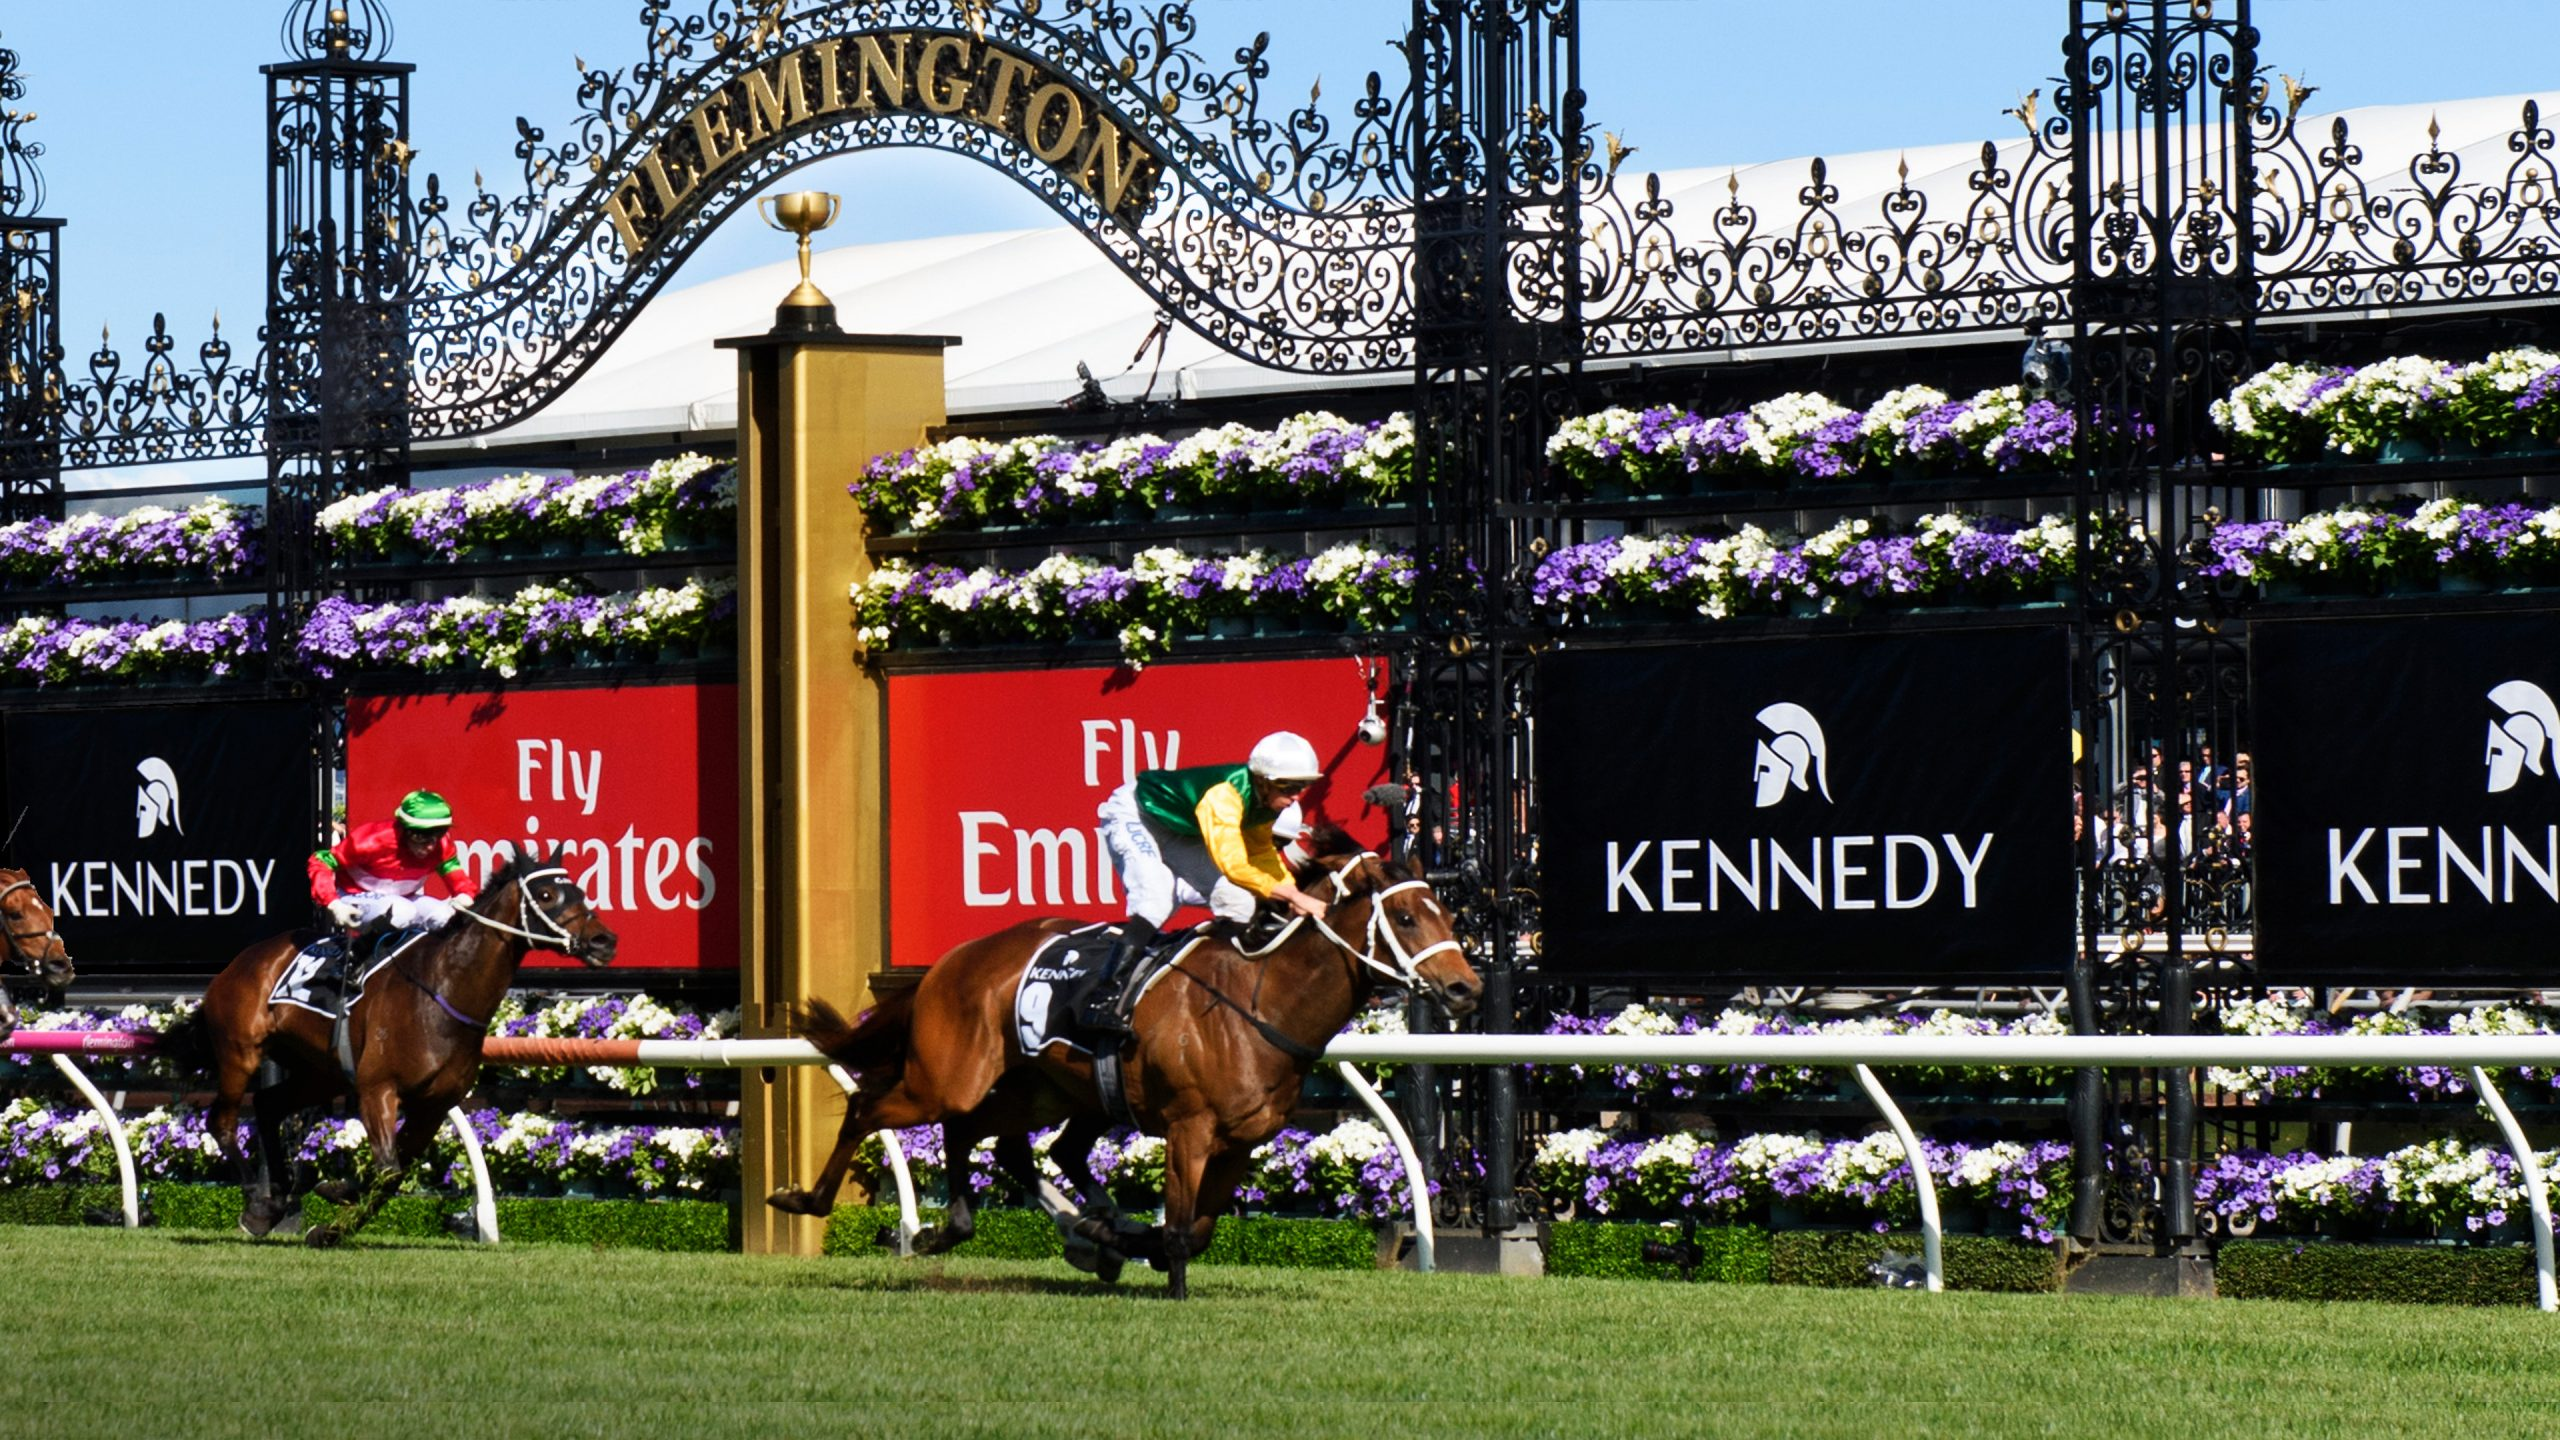 Horses pass the cup in the Kennedy Mile part of the Flemington Race Week. Field branding shows Kennedy logos designed by Helium Design Melbourne.